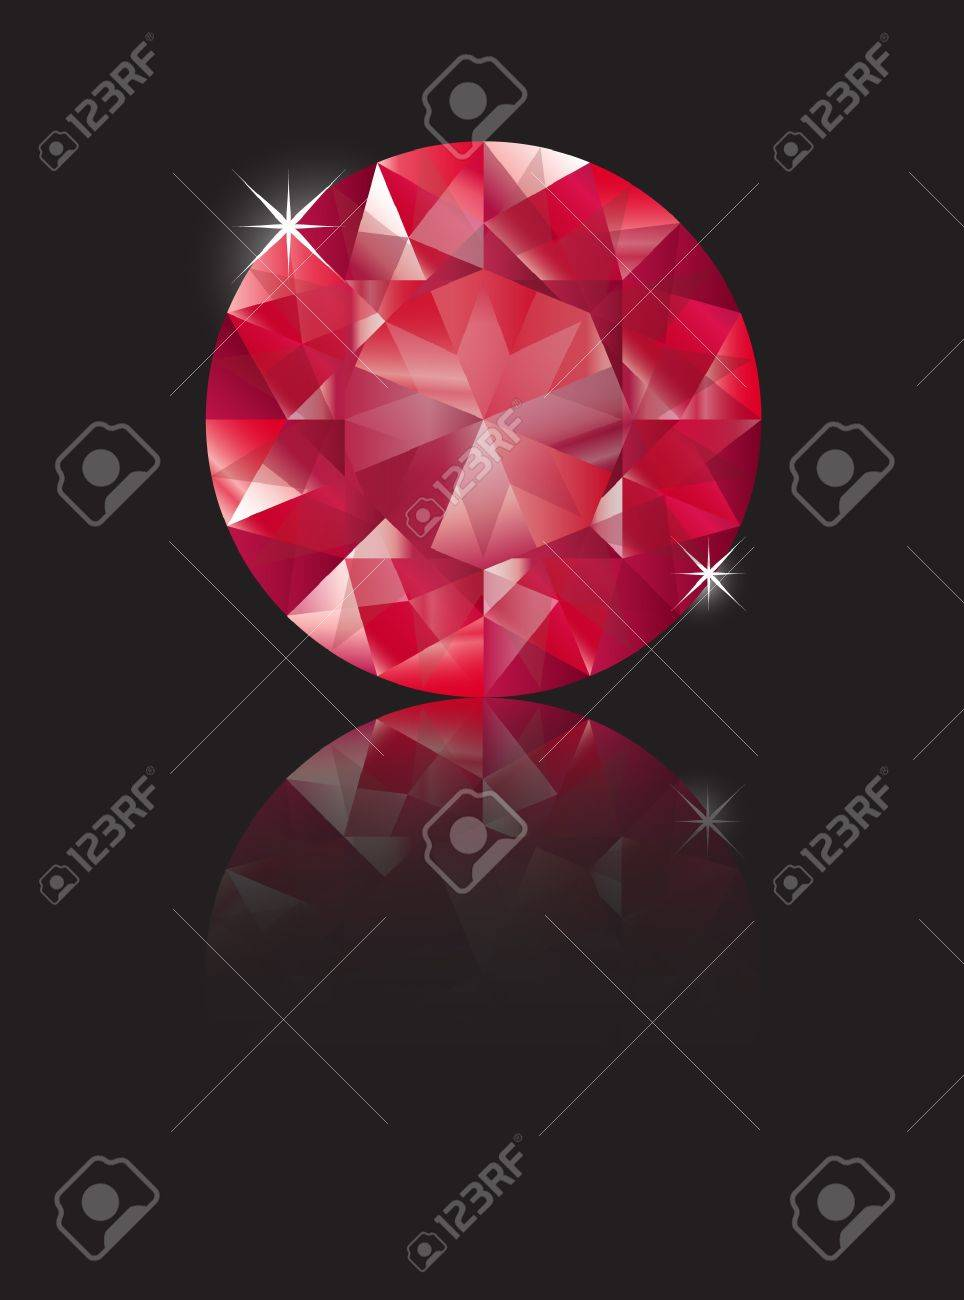 A brilliant cut ruby isolated on black with reflection. Space for text. EPS10 vector format Stock Vector - 10631694